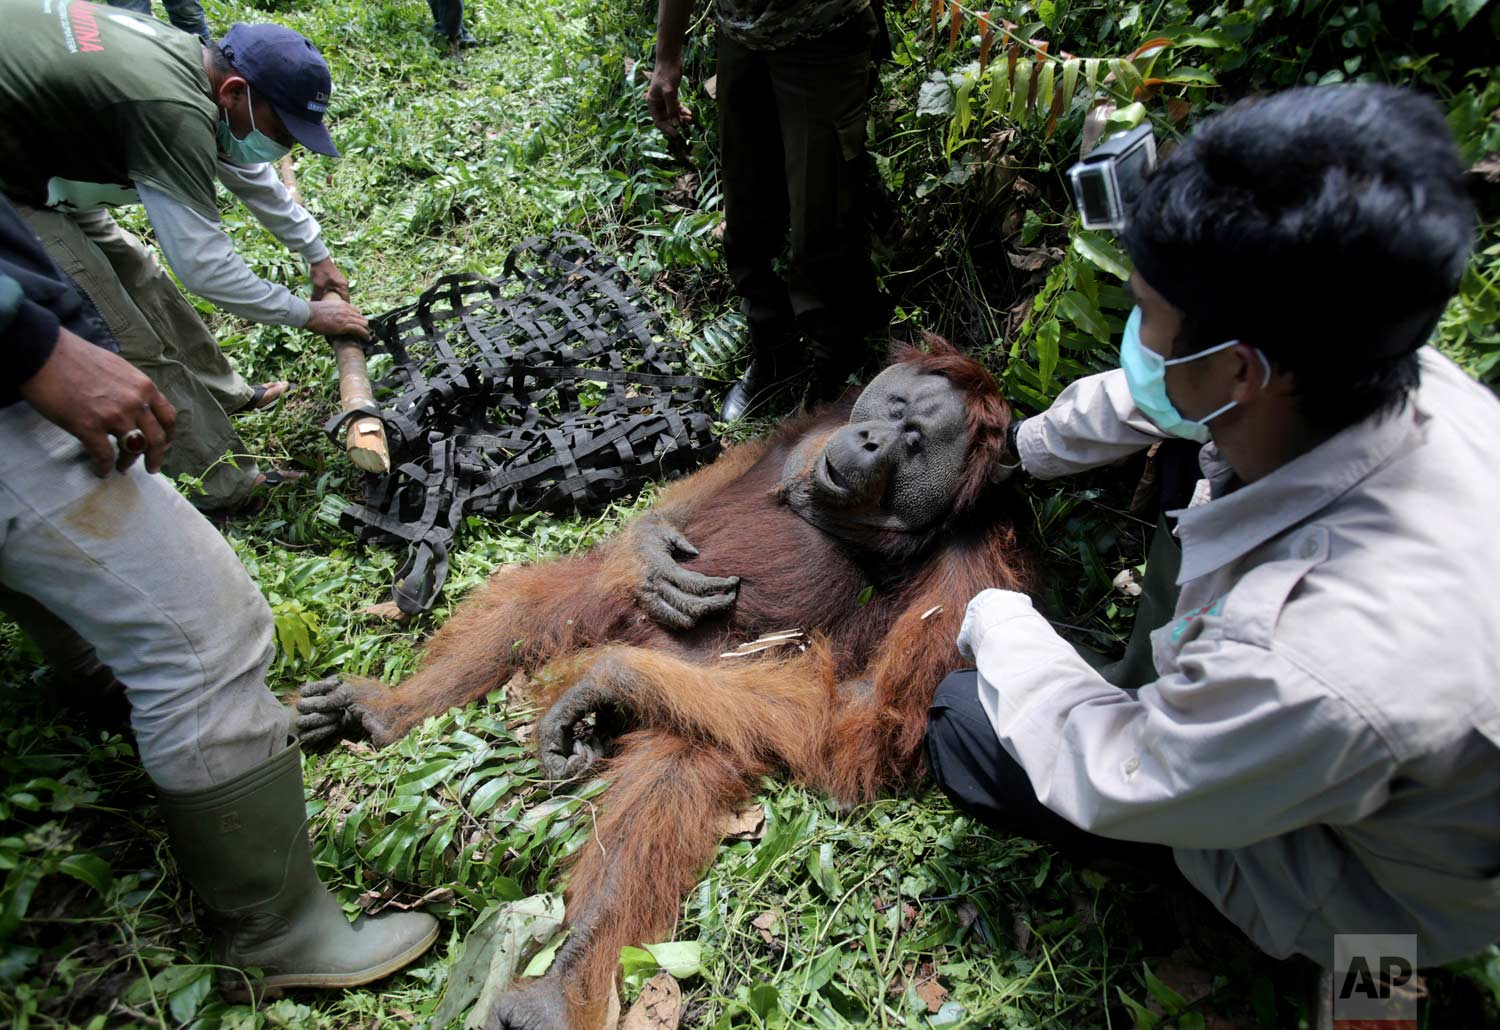 In this Thursday, Aug. 10, 2017 photo, conservationists of the Sumatran Orangutan Conservation Program (SOCP) prepare a makeshift stretcher to carry a tranquilized male orangutan to be relocated from a swath of forest located too close to a palm oil plantation at Tripa peat swamp in Aceh province, Indonesia. (AP Photo/Binsar Bakkara)